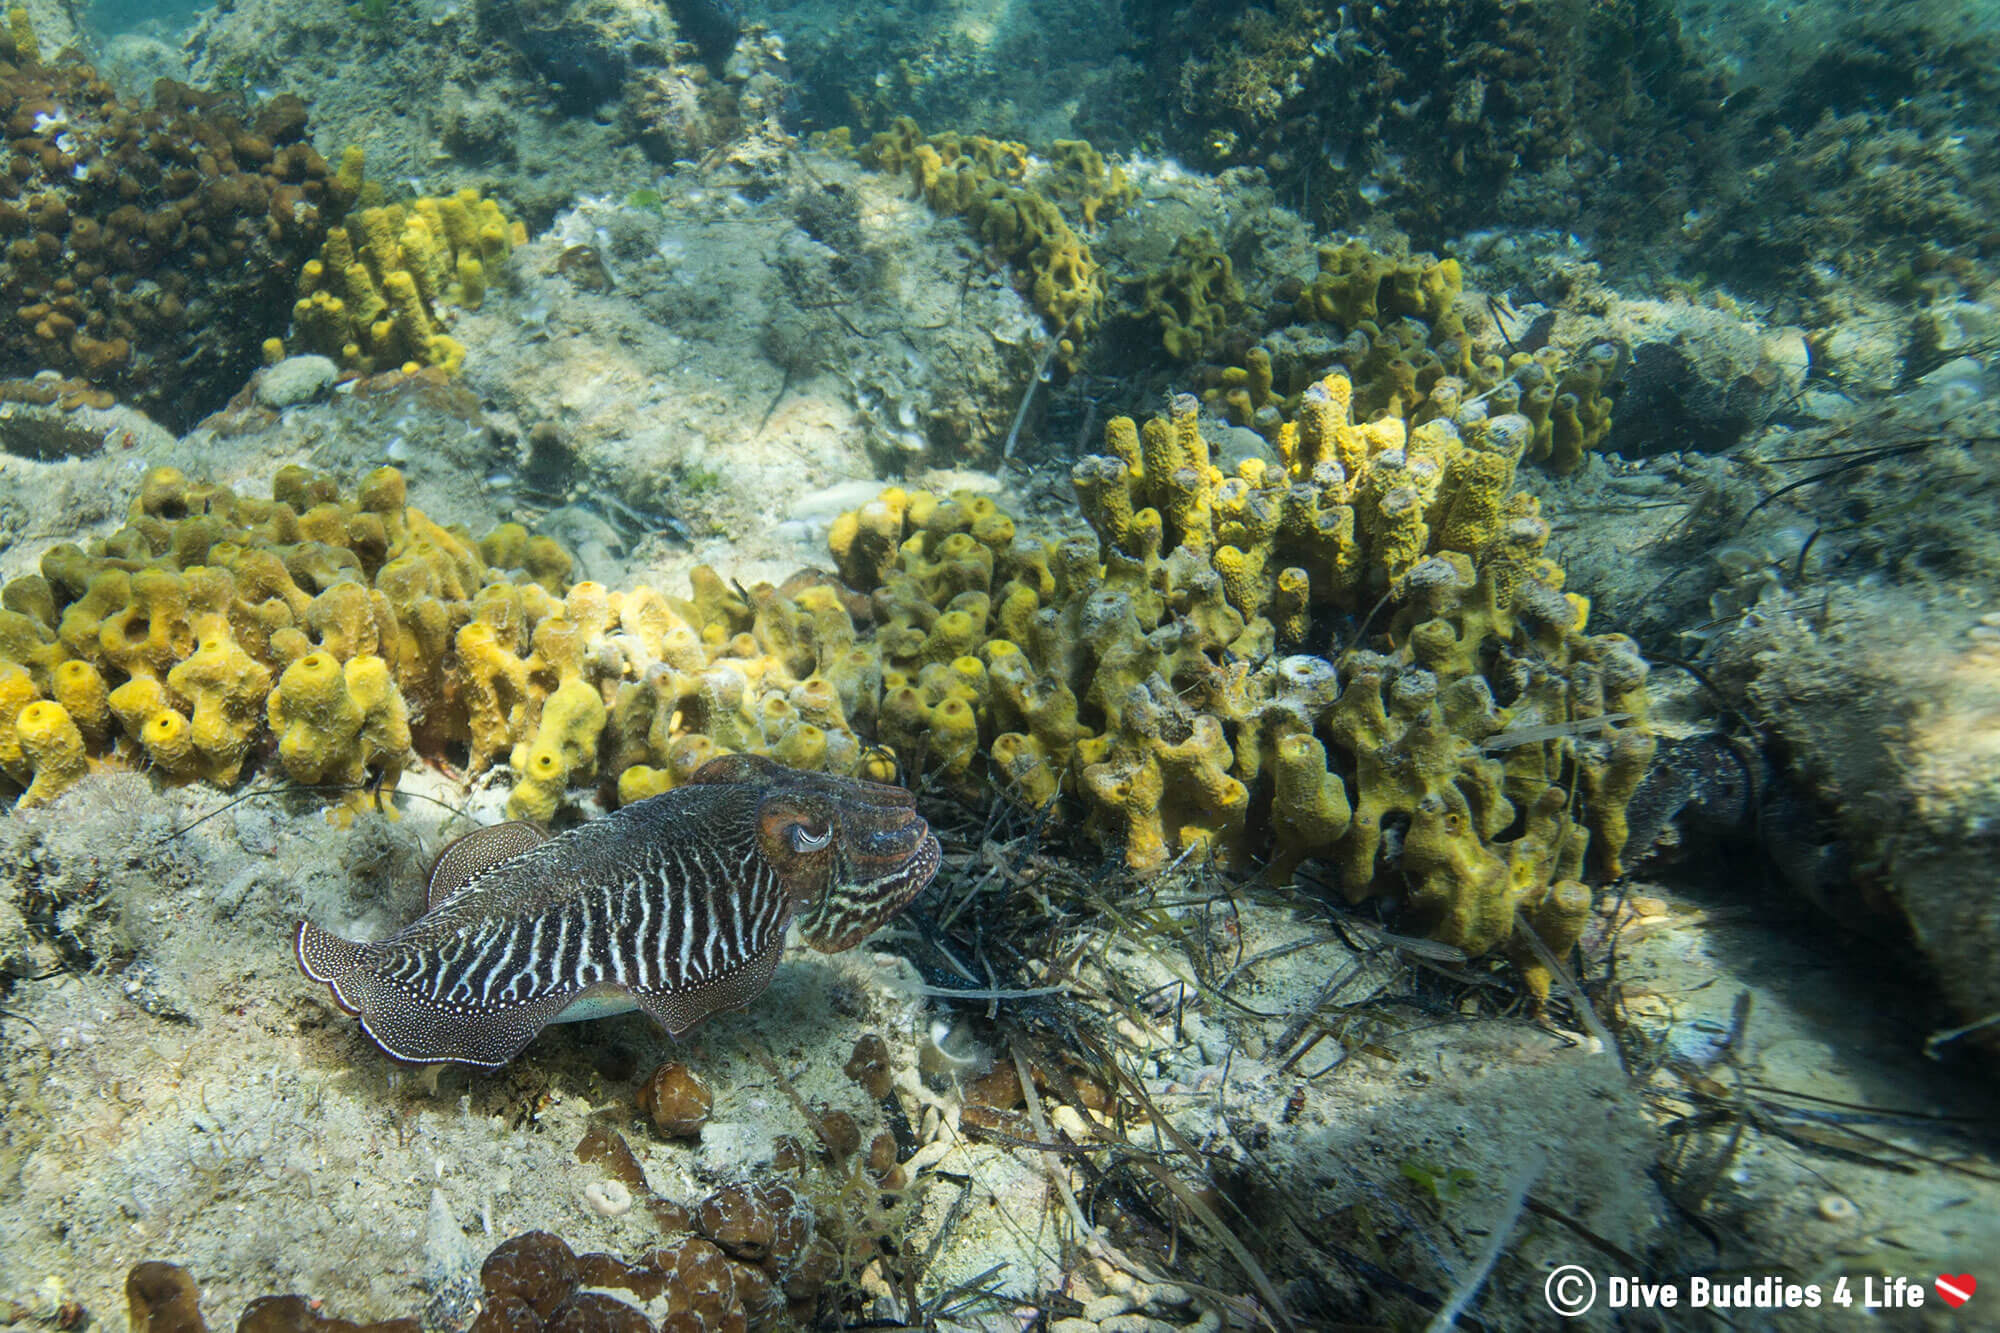 Zebra Patterned Cuttlefish Swimming Over The Sponge Reef In Slovenia